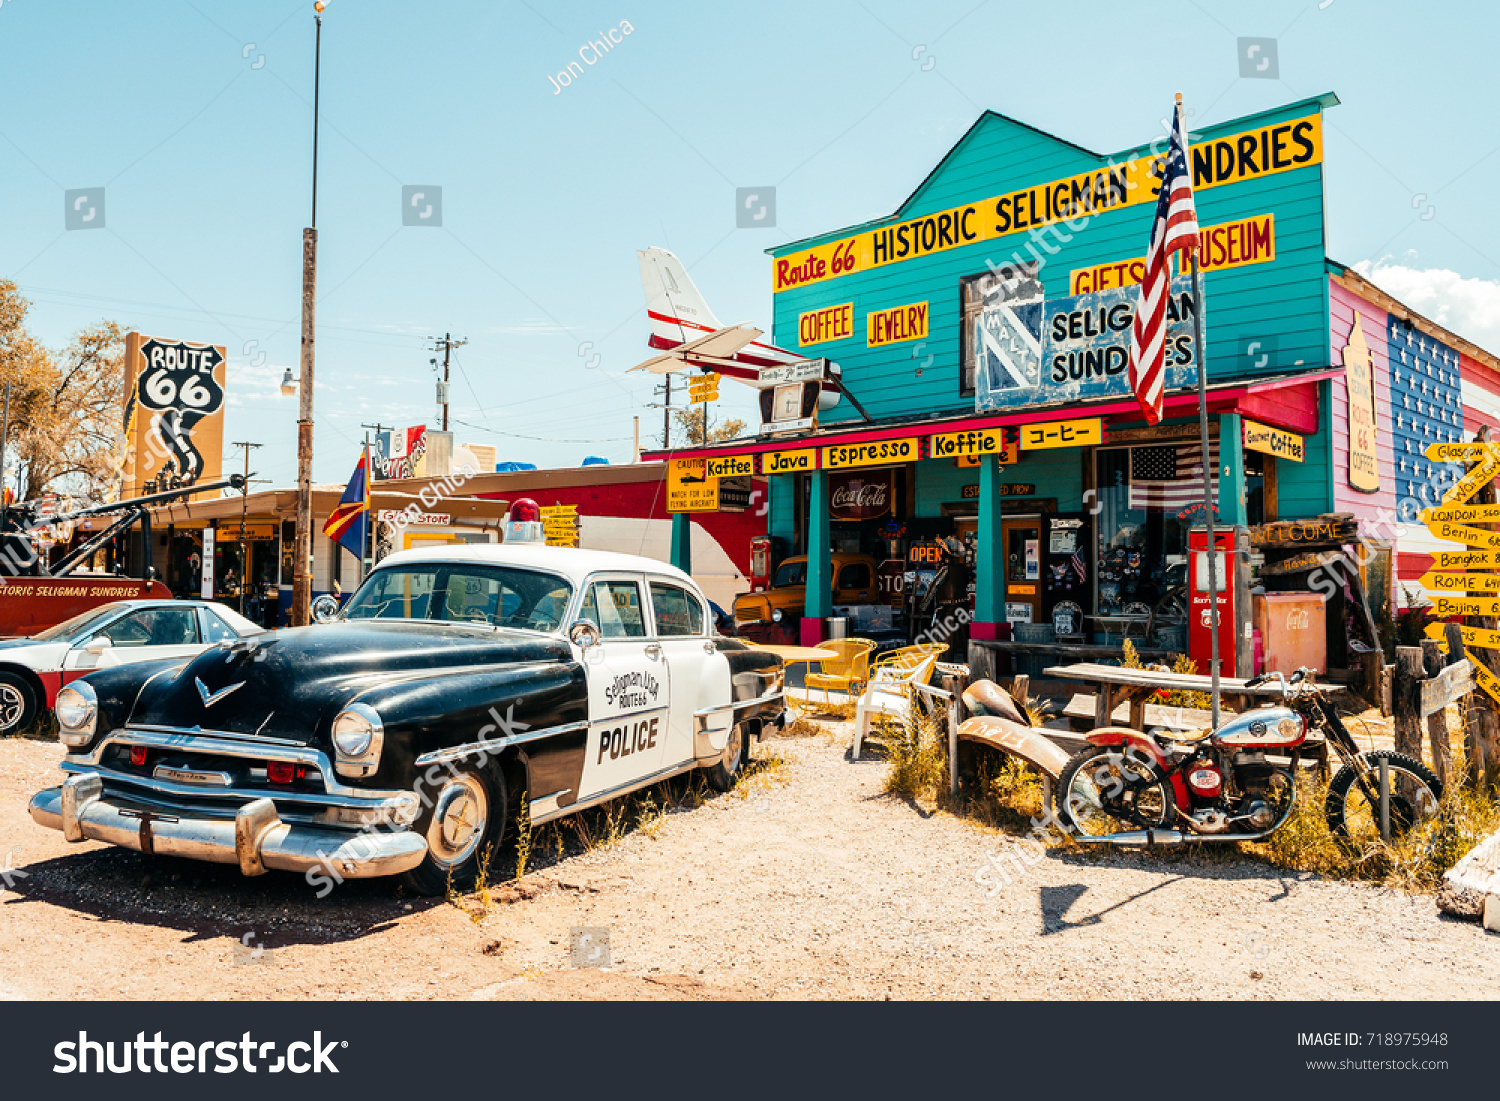 seligman. arizona. 28th august, 2017: famous seligman town of route